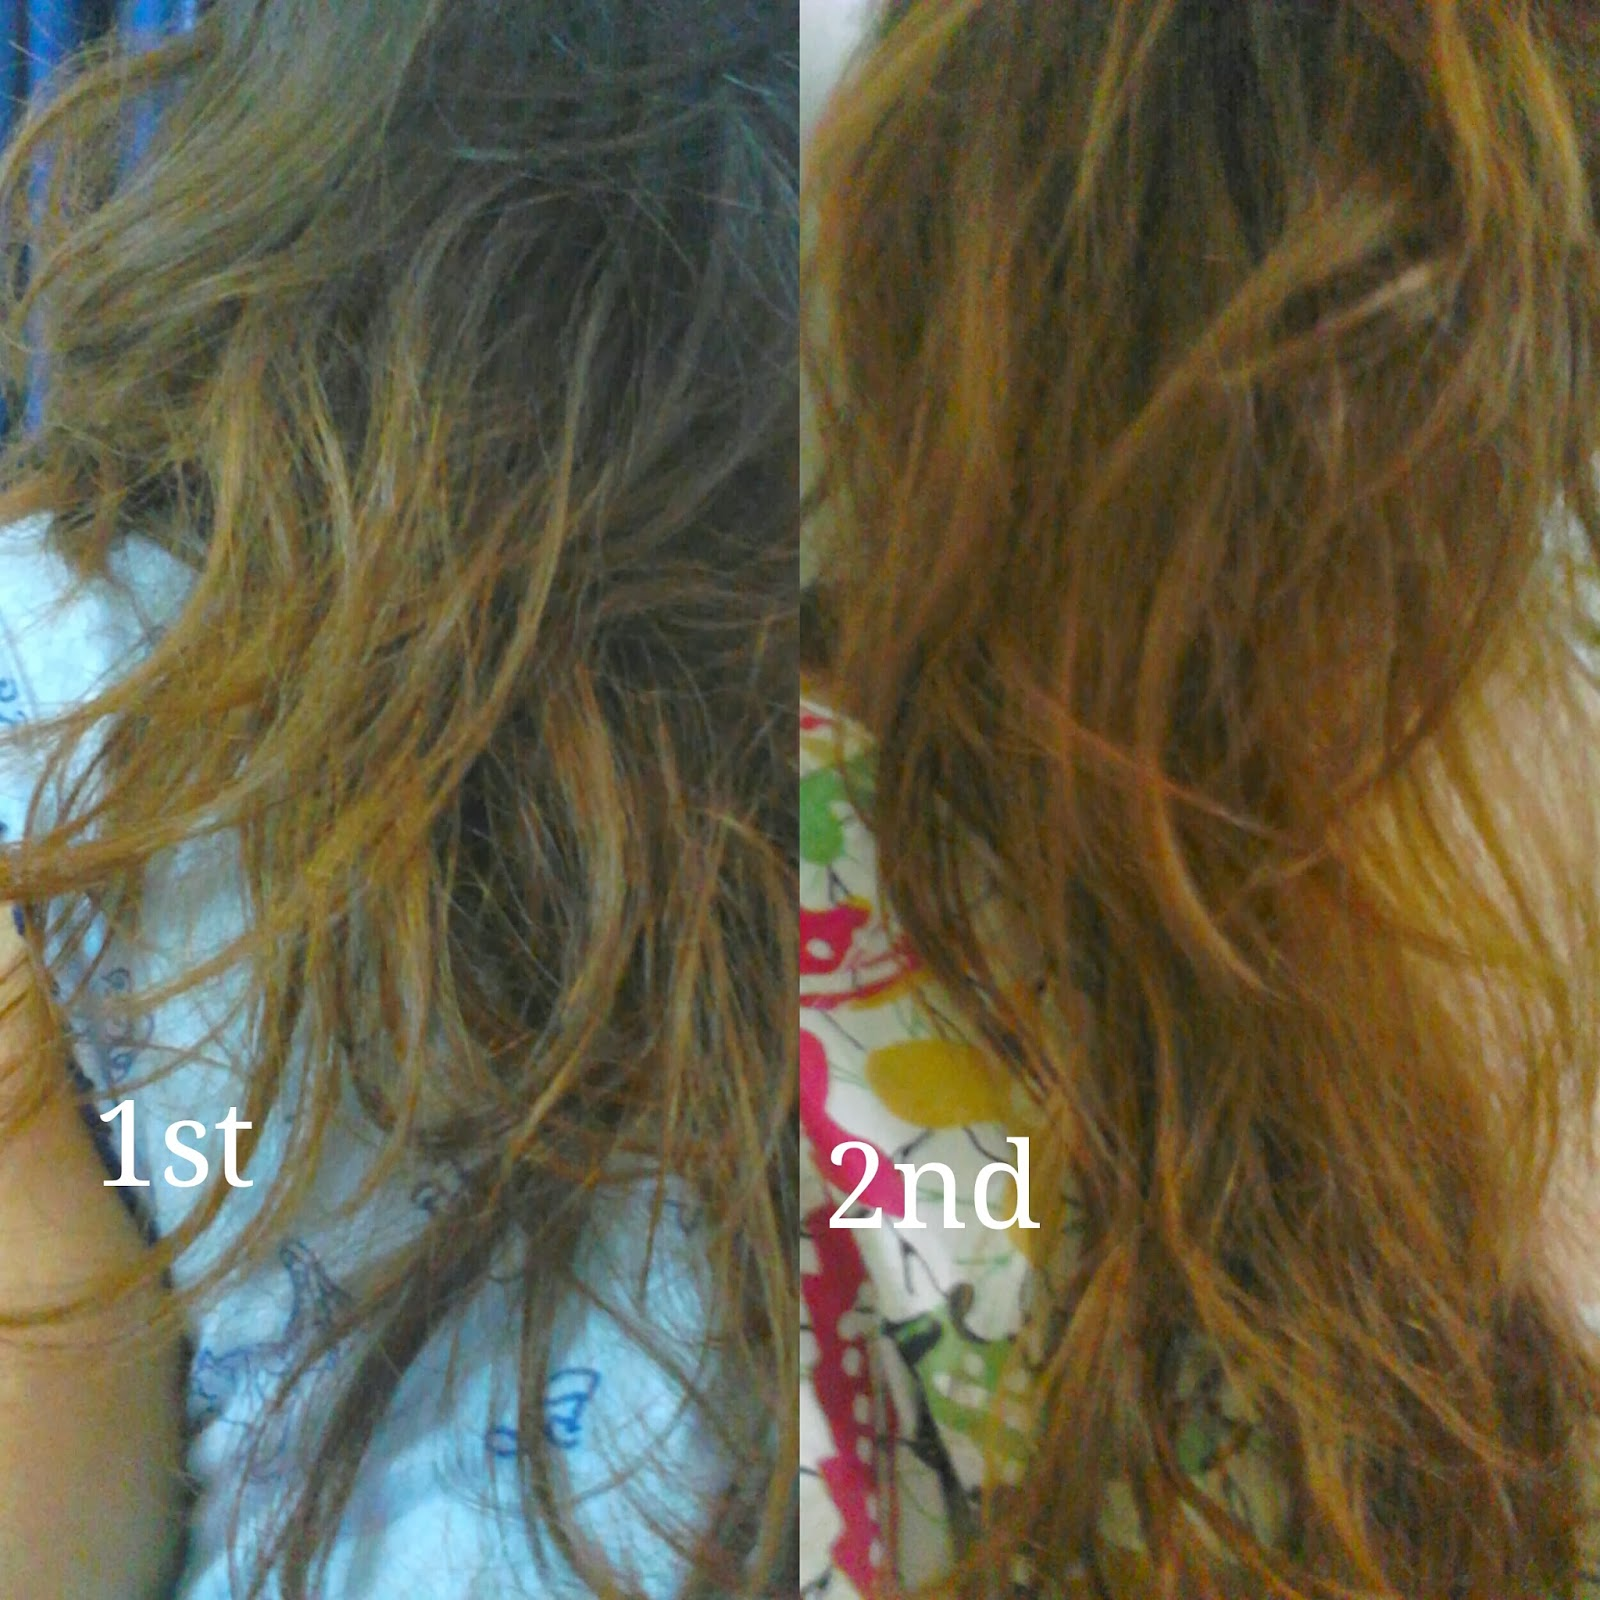 Project Curve: How To: Lighten Dark Asian Hair Without Bleach